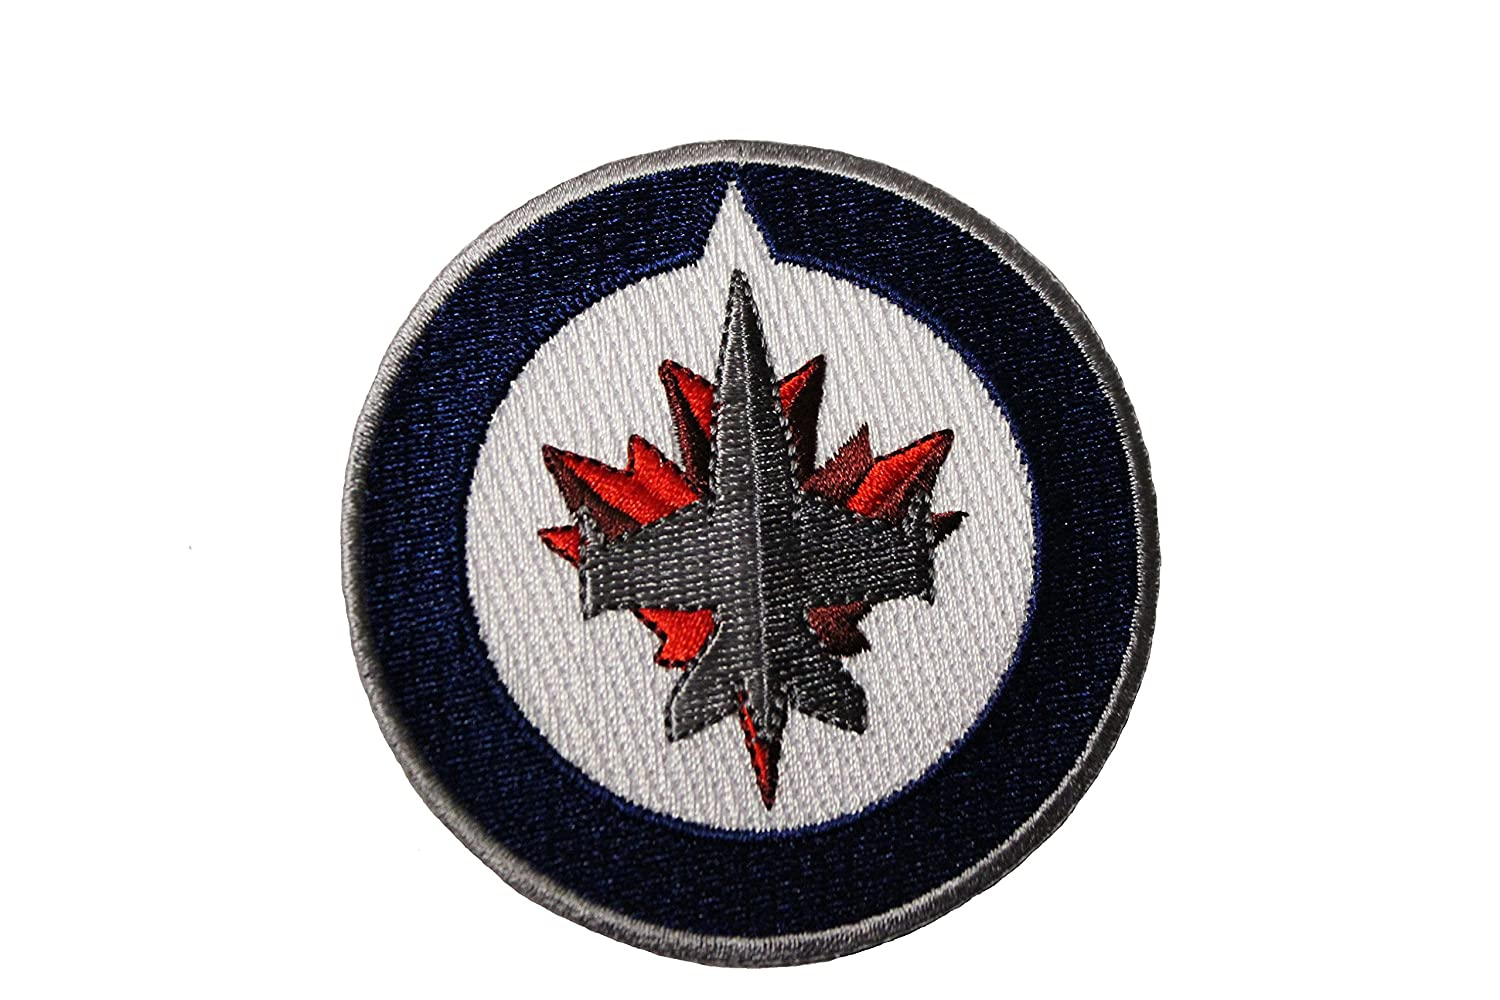 WINNIPEG JETS NHL Hockey Logo Embroidered Iron On Patch Crest Badge .. Size : 3 Inch ( 7.5 Cm ) In Diameter ... New flags inc